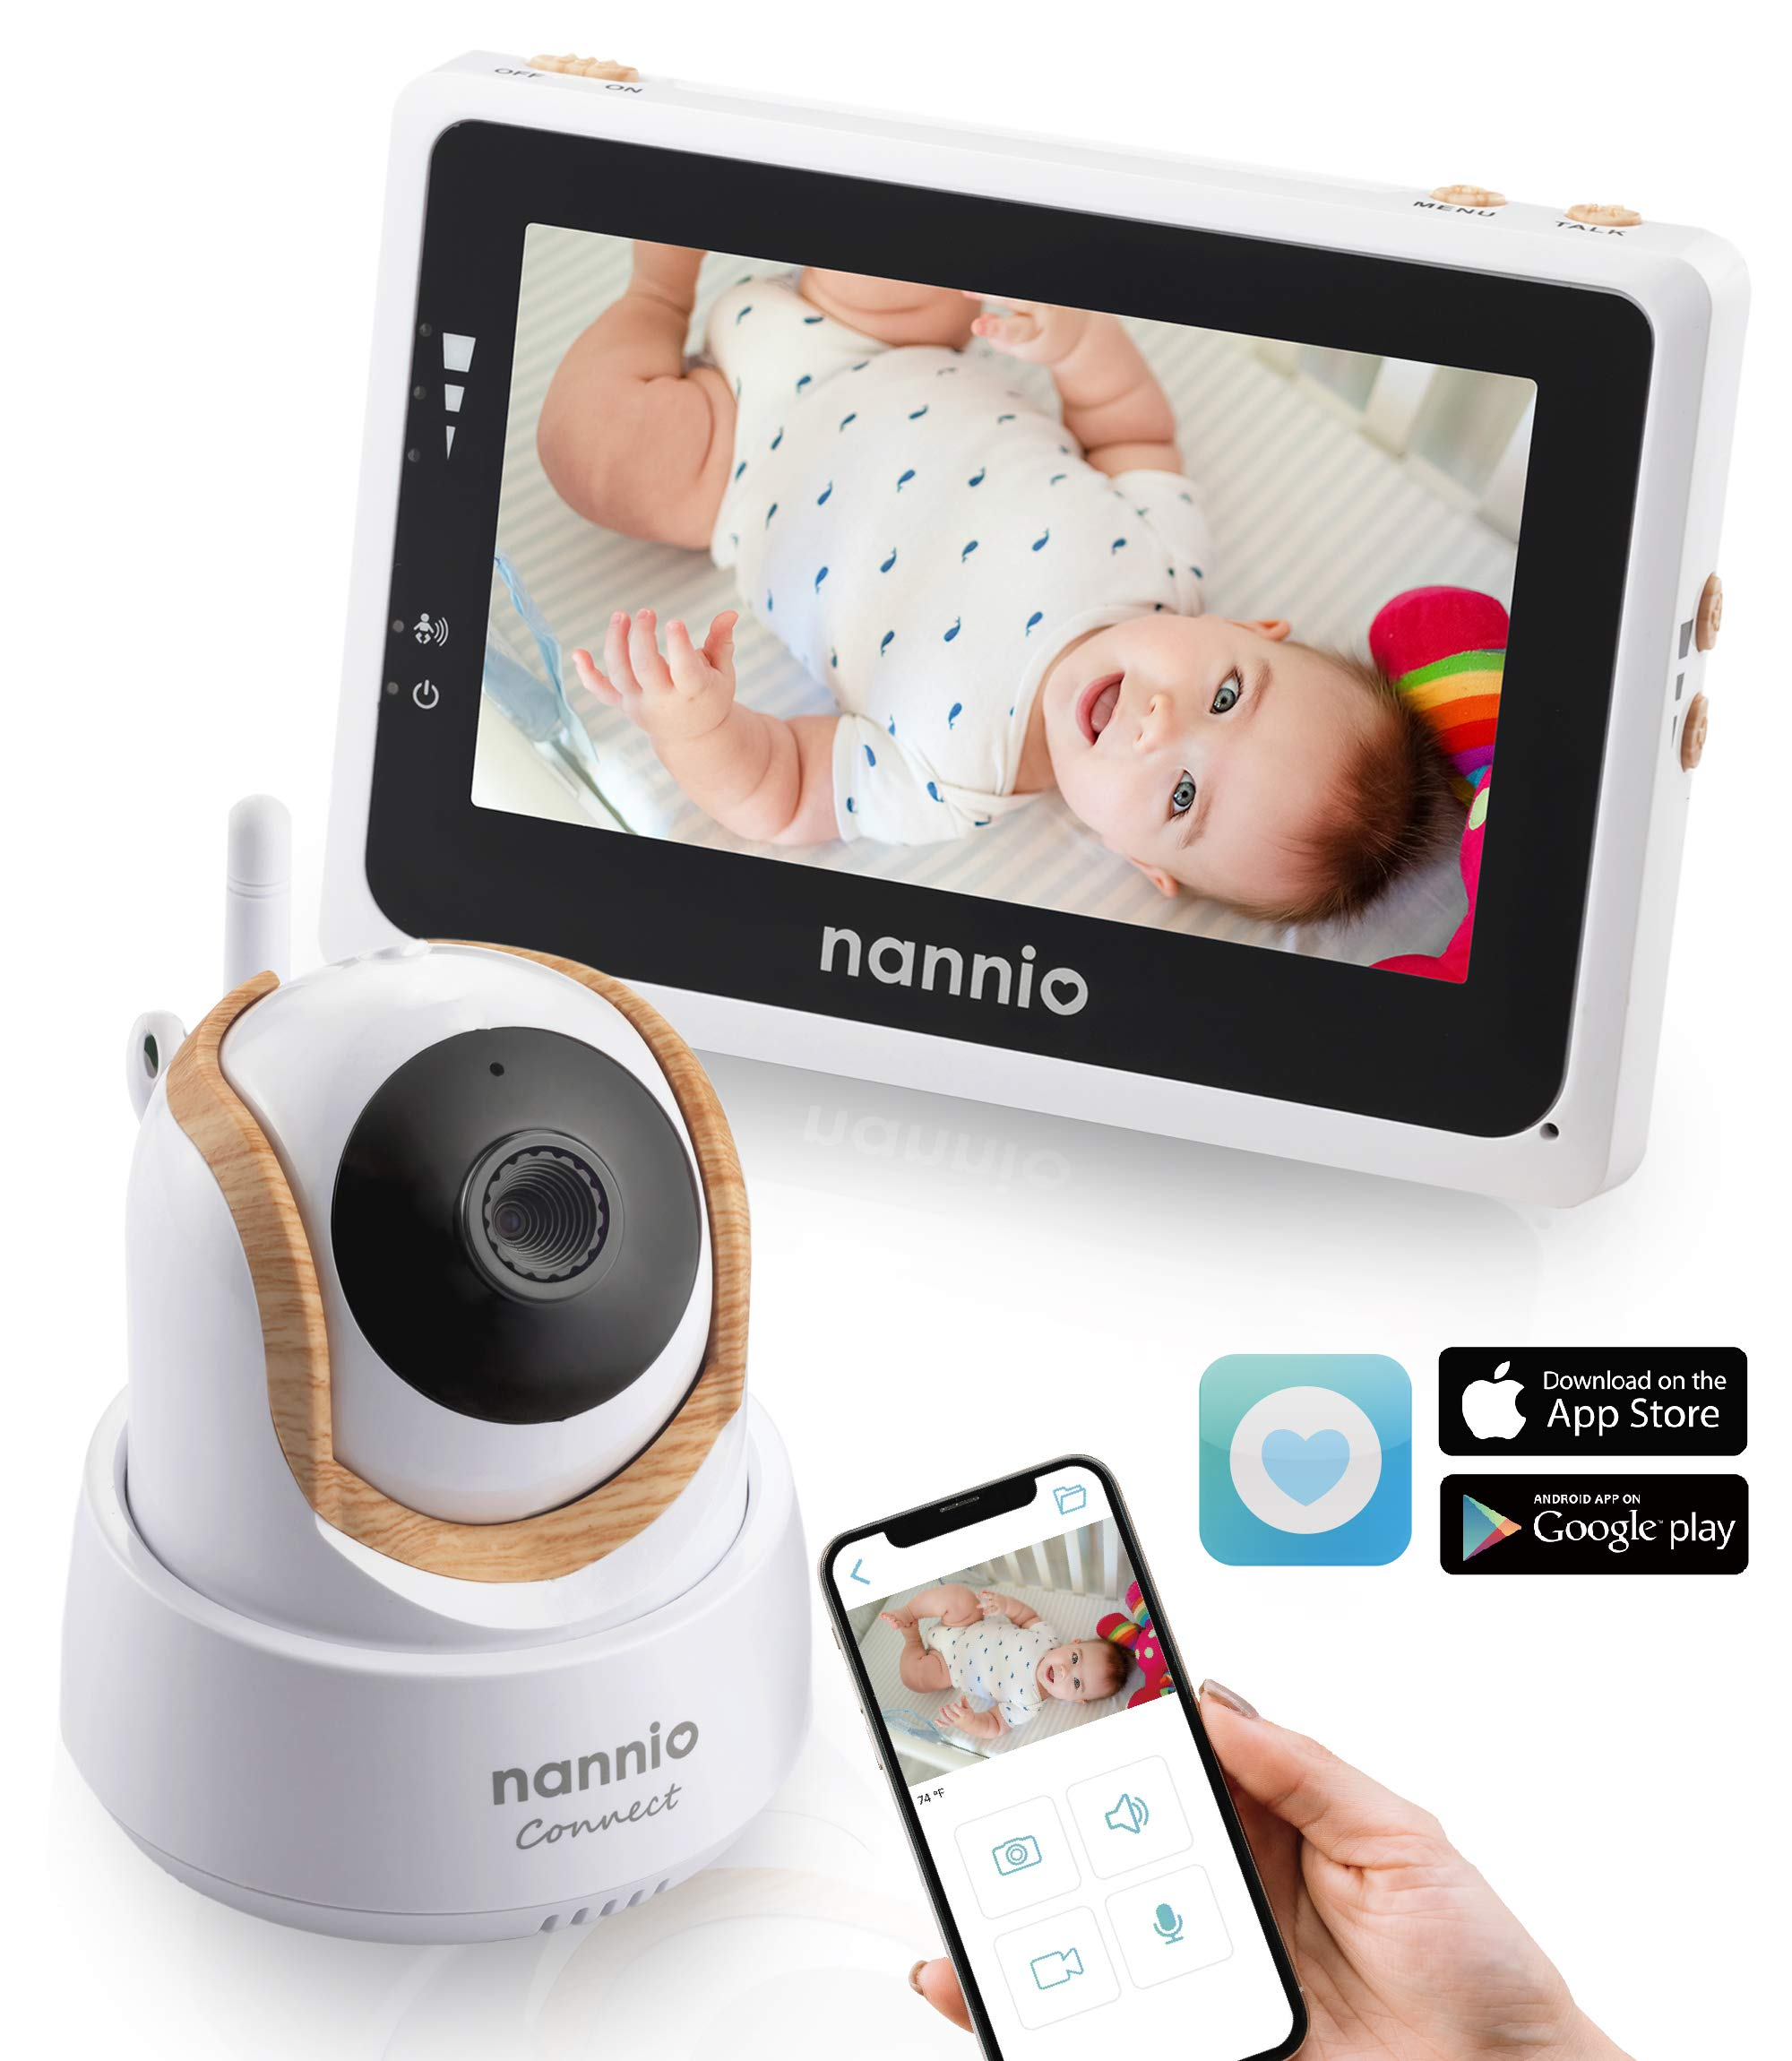 Nannio Connect Video Baby Monitor with Mobile APP 4.3 inch Touch Screen Parent Unit and HD Pan-Tilt-Zoom Camera, Available for iOS and Android,Outstanding Night Vision,VOX and Temperature Alert …